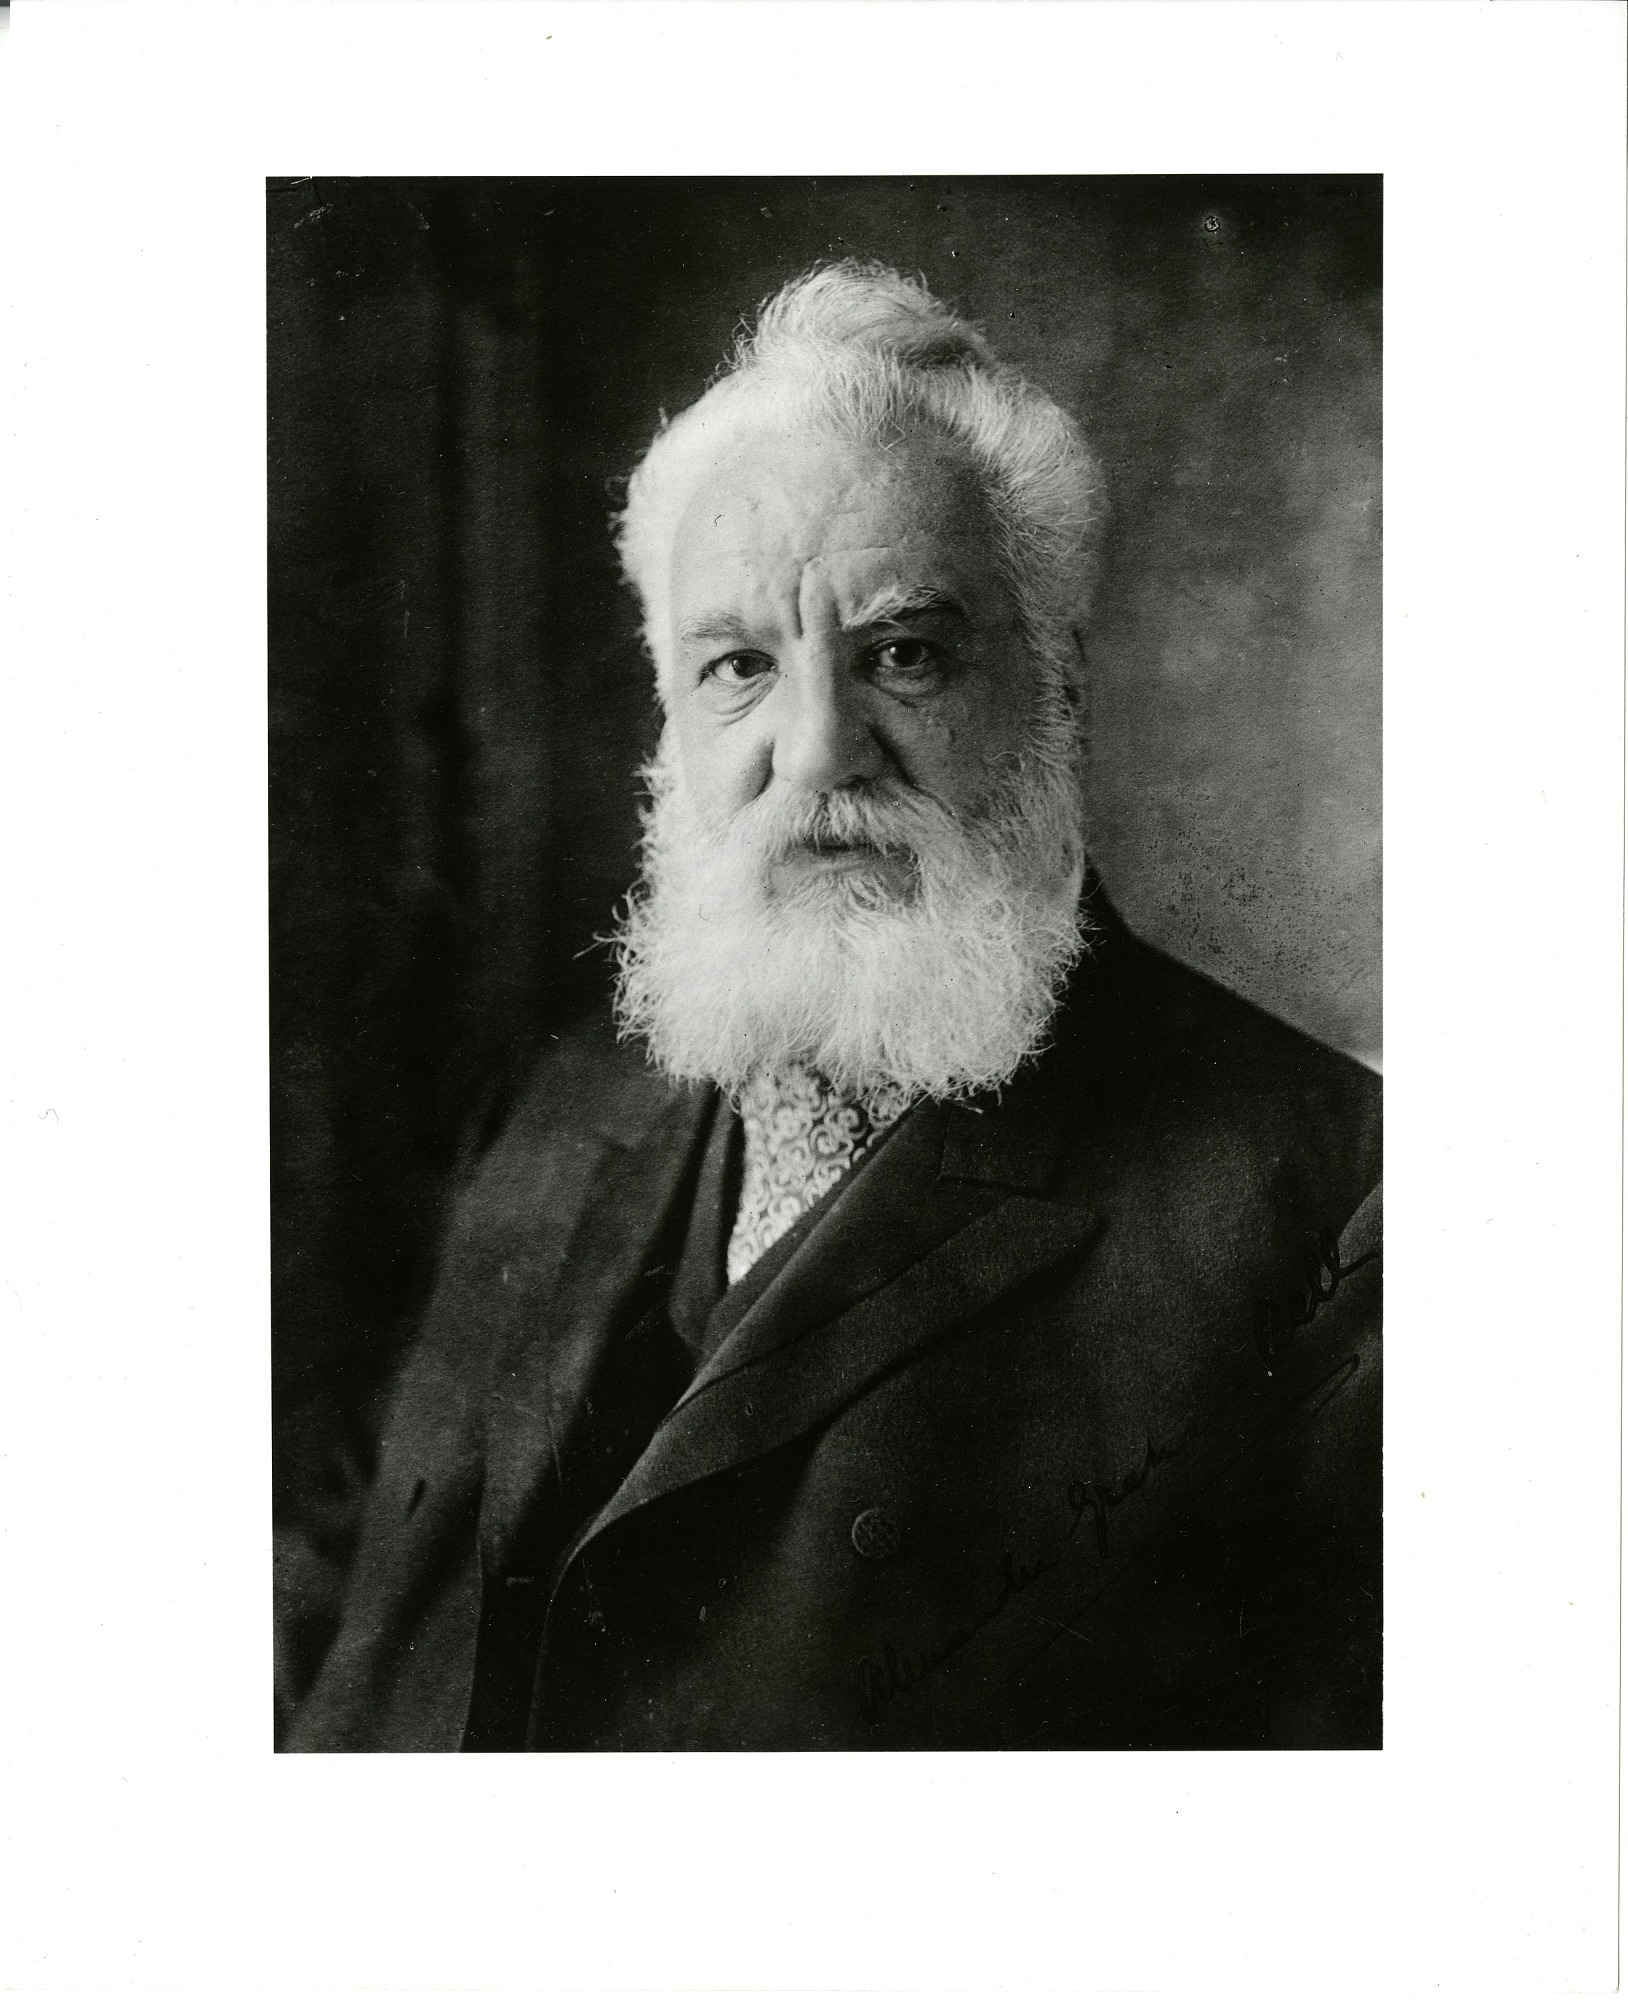 Alexander Graham Bell, by Unknown, Smithsonian Archives - History Div, SIA2012-1088 or 41768-A.